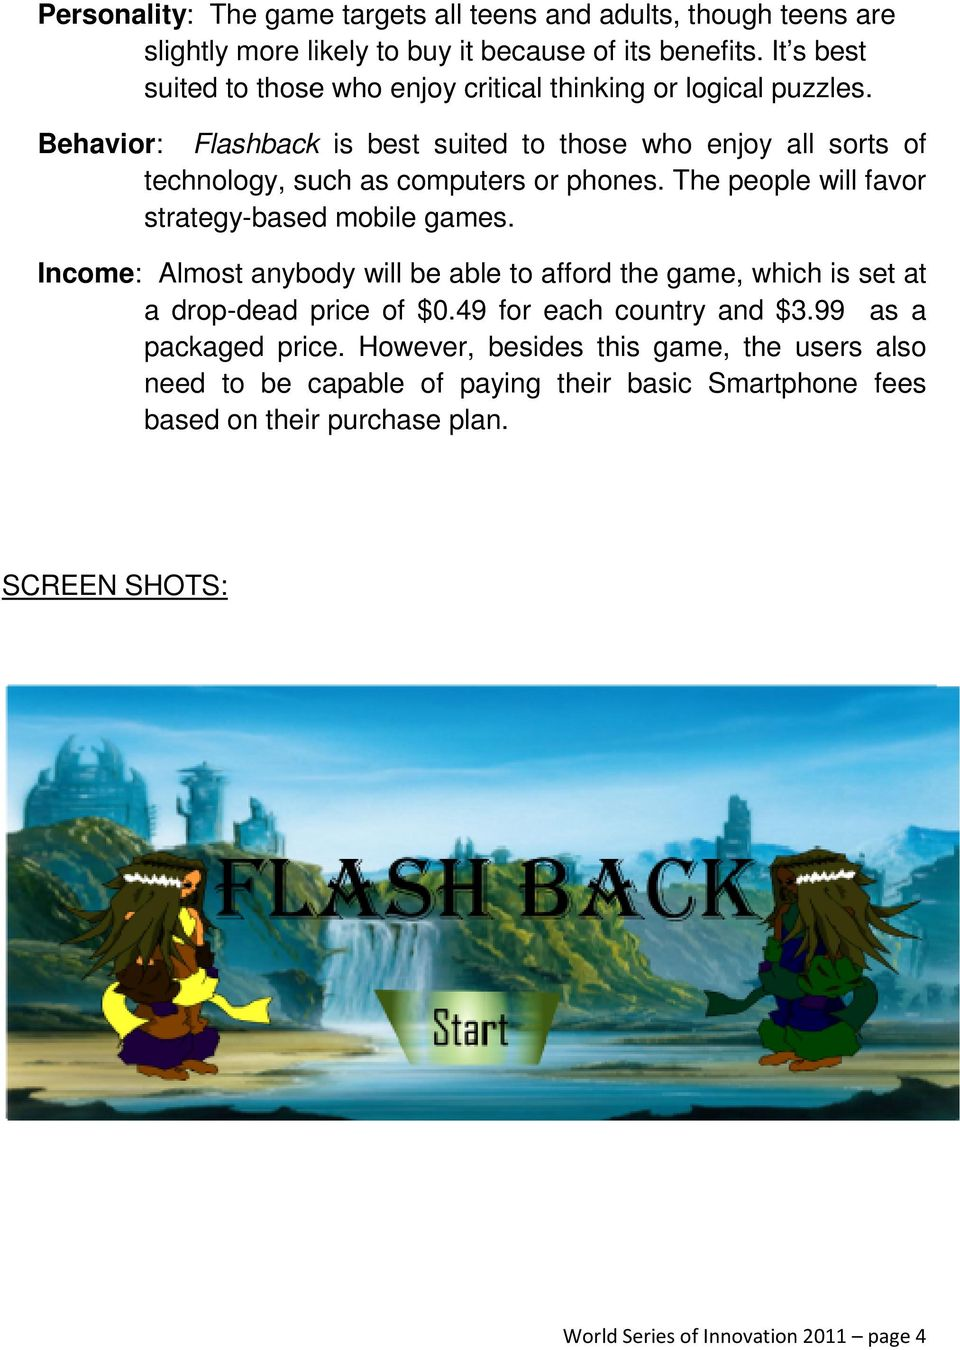 Behavior: Flashback is best suited to those who enjoy all sorts of technology, such as computers or phones. The people will favor strategy-based mobile games.